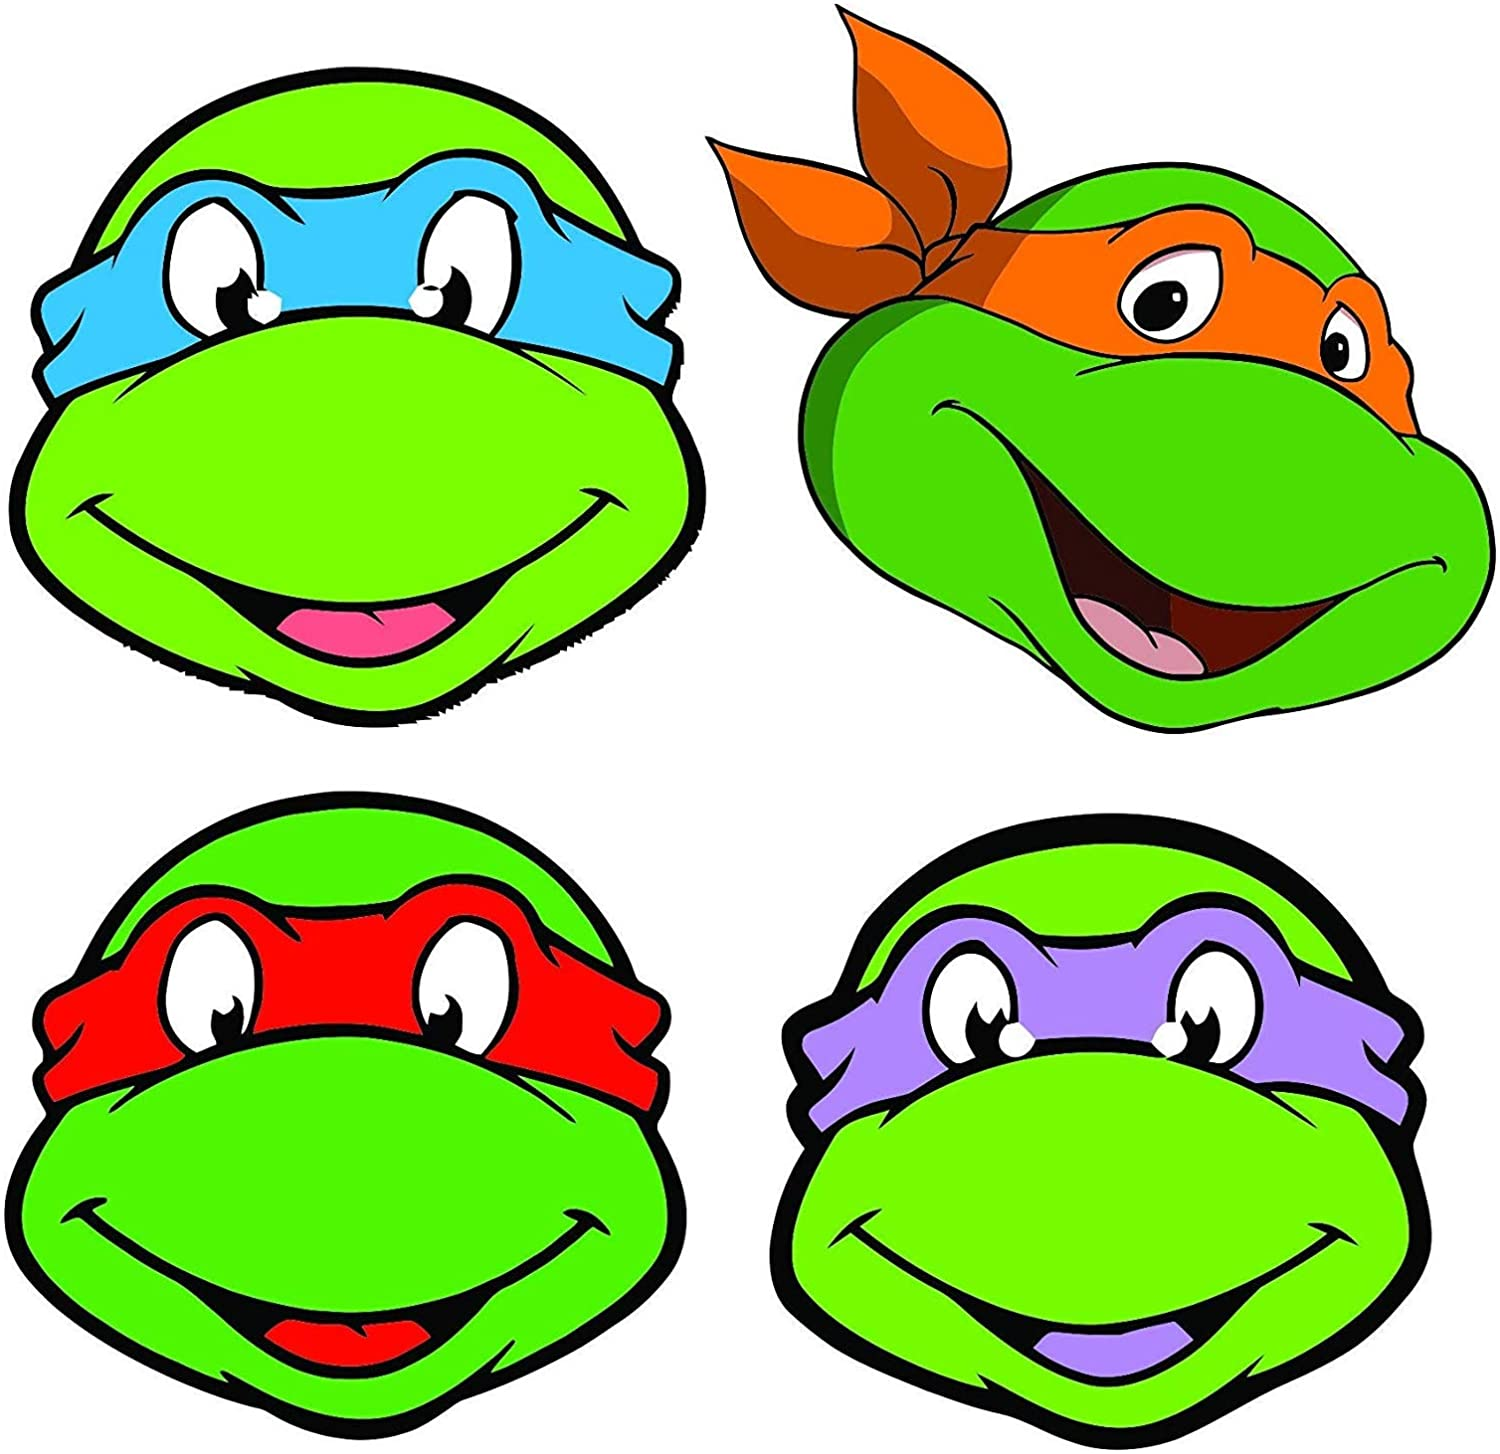 Amazon.com: Ninja Turtles Cartoon Show Movie Character Turtles Turtle Heads  - 5 Inch Sticker Graphic - Auto Wall Laptop Cell phone Bumper Window Decal  Sticker: Kitchen & Dining